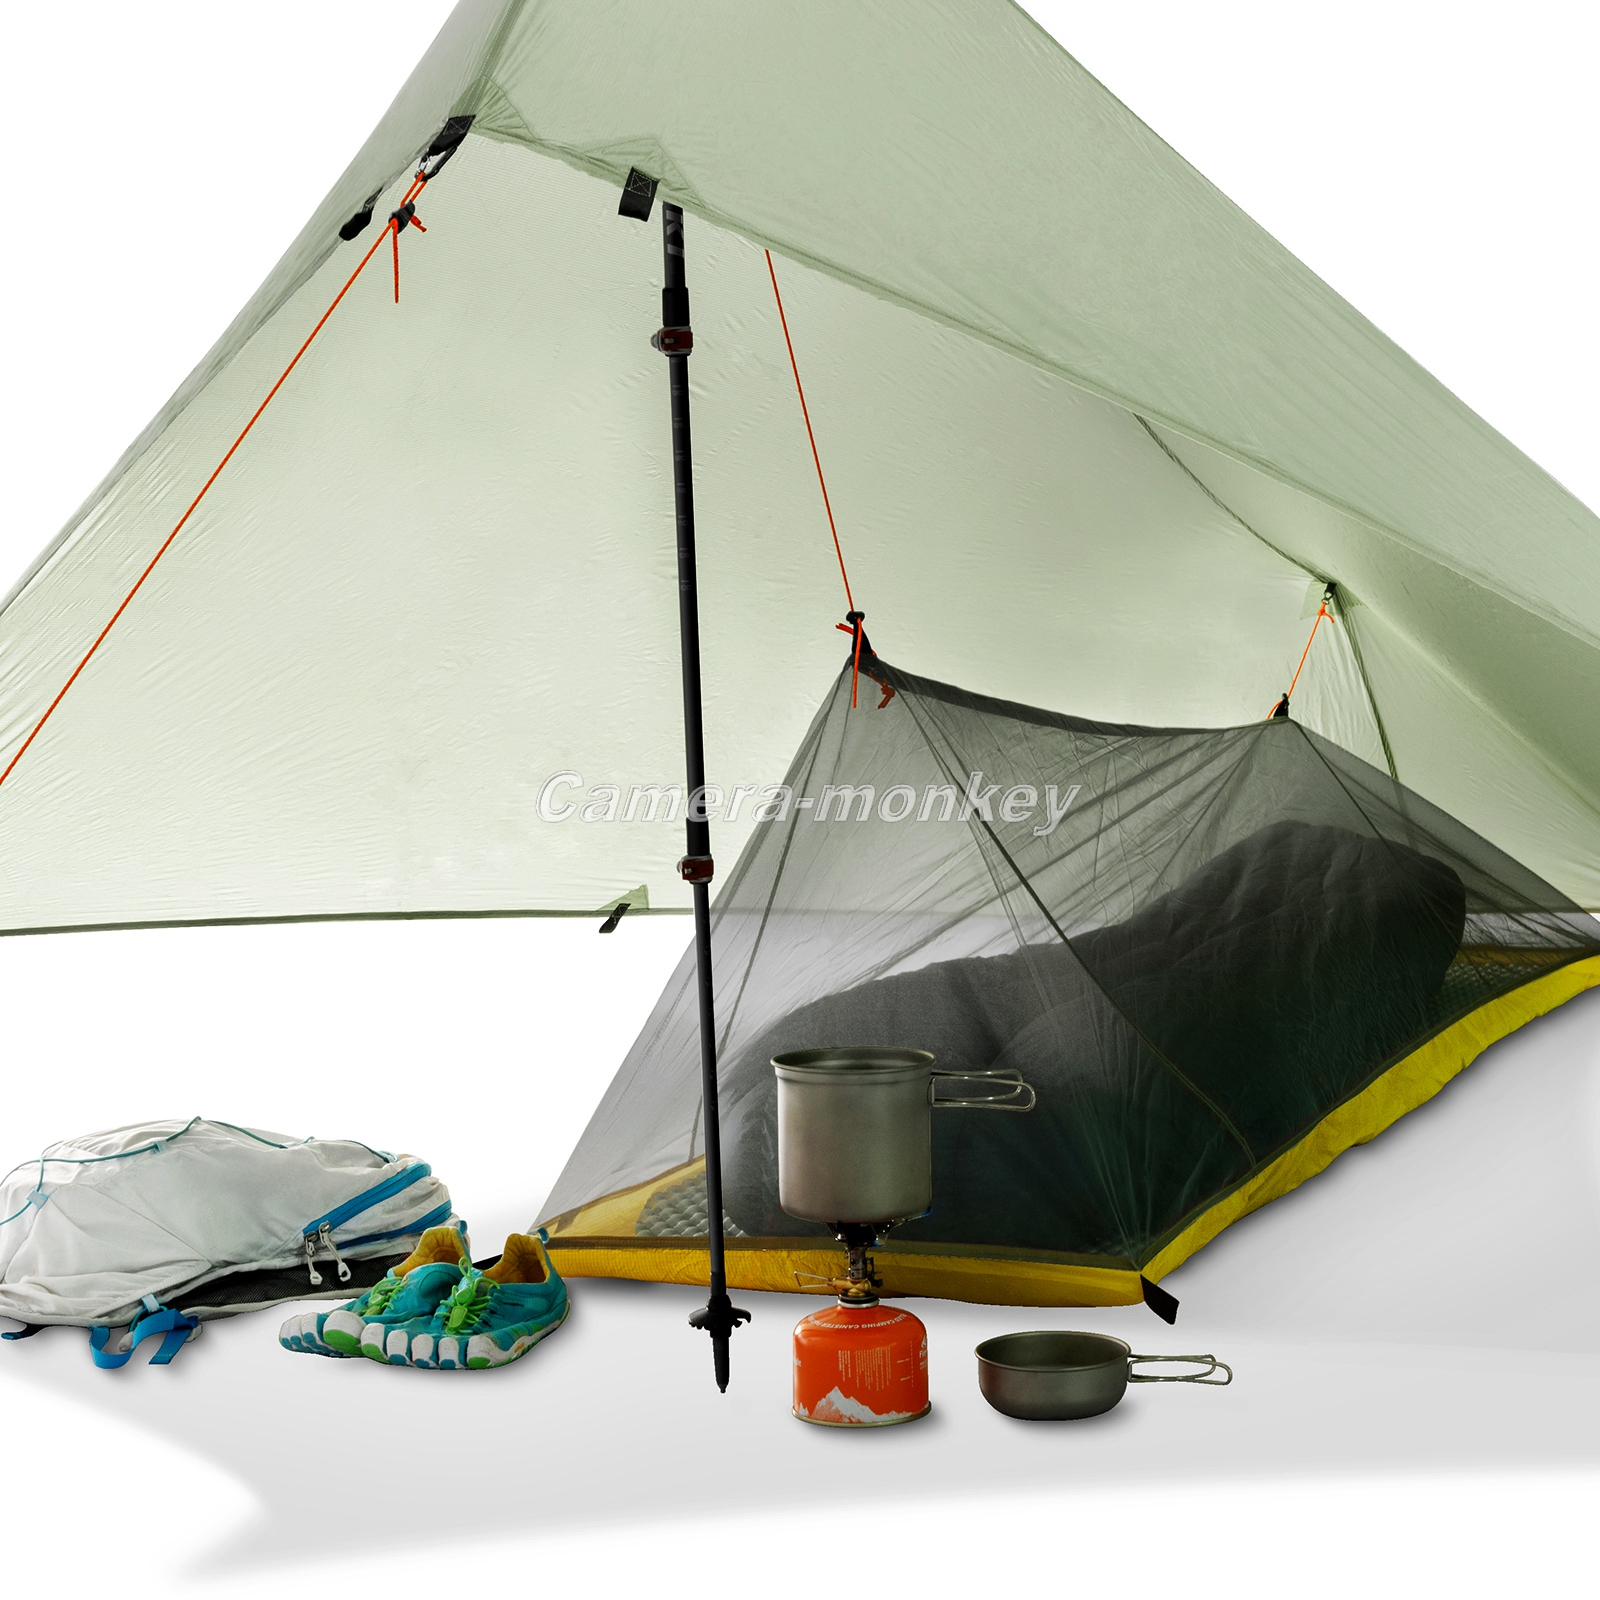 UK SELLER Outdoor Camping Shelter Waterproof Pop Up Awning ...